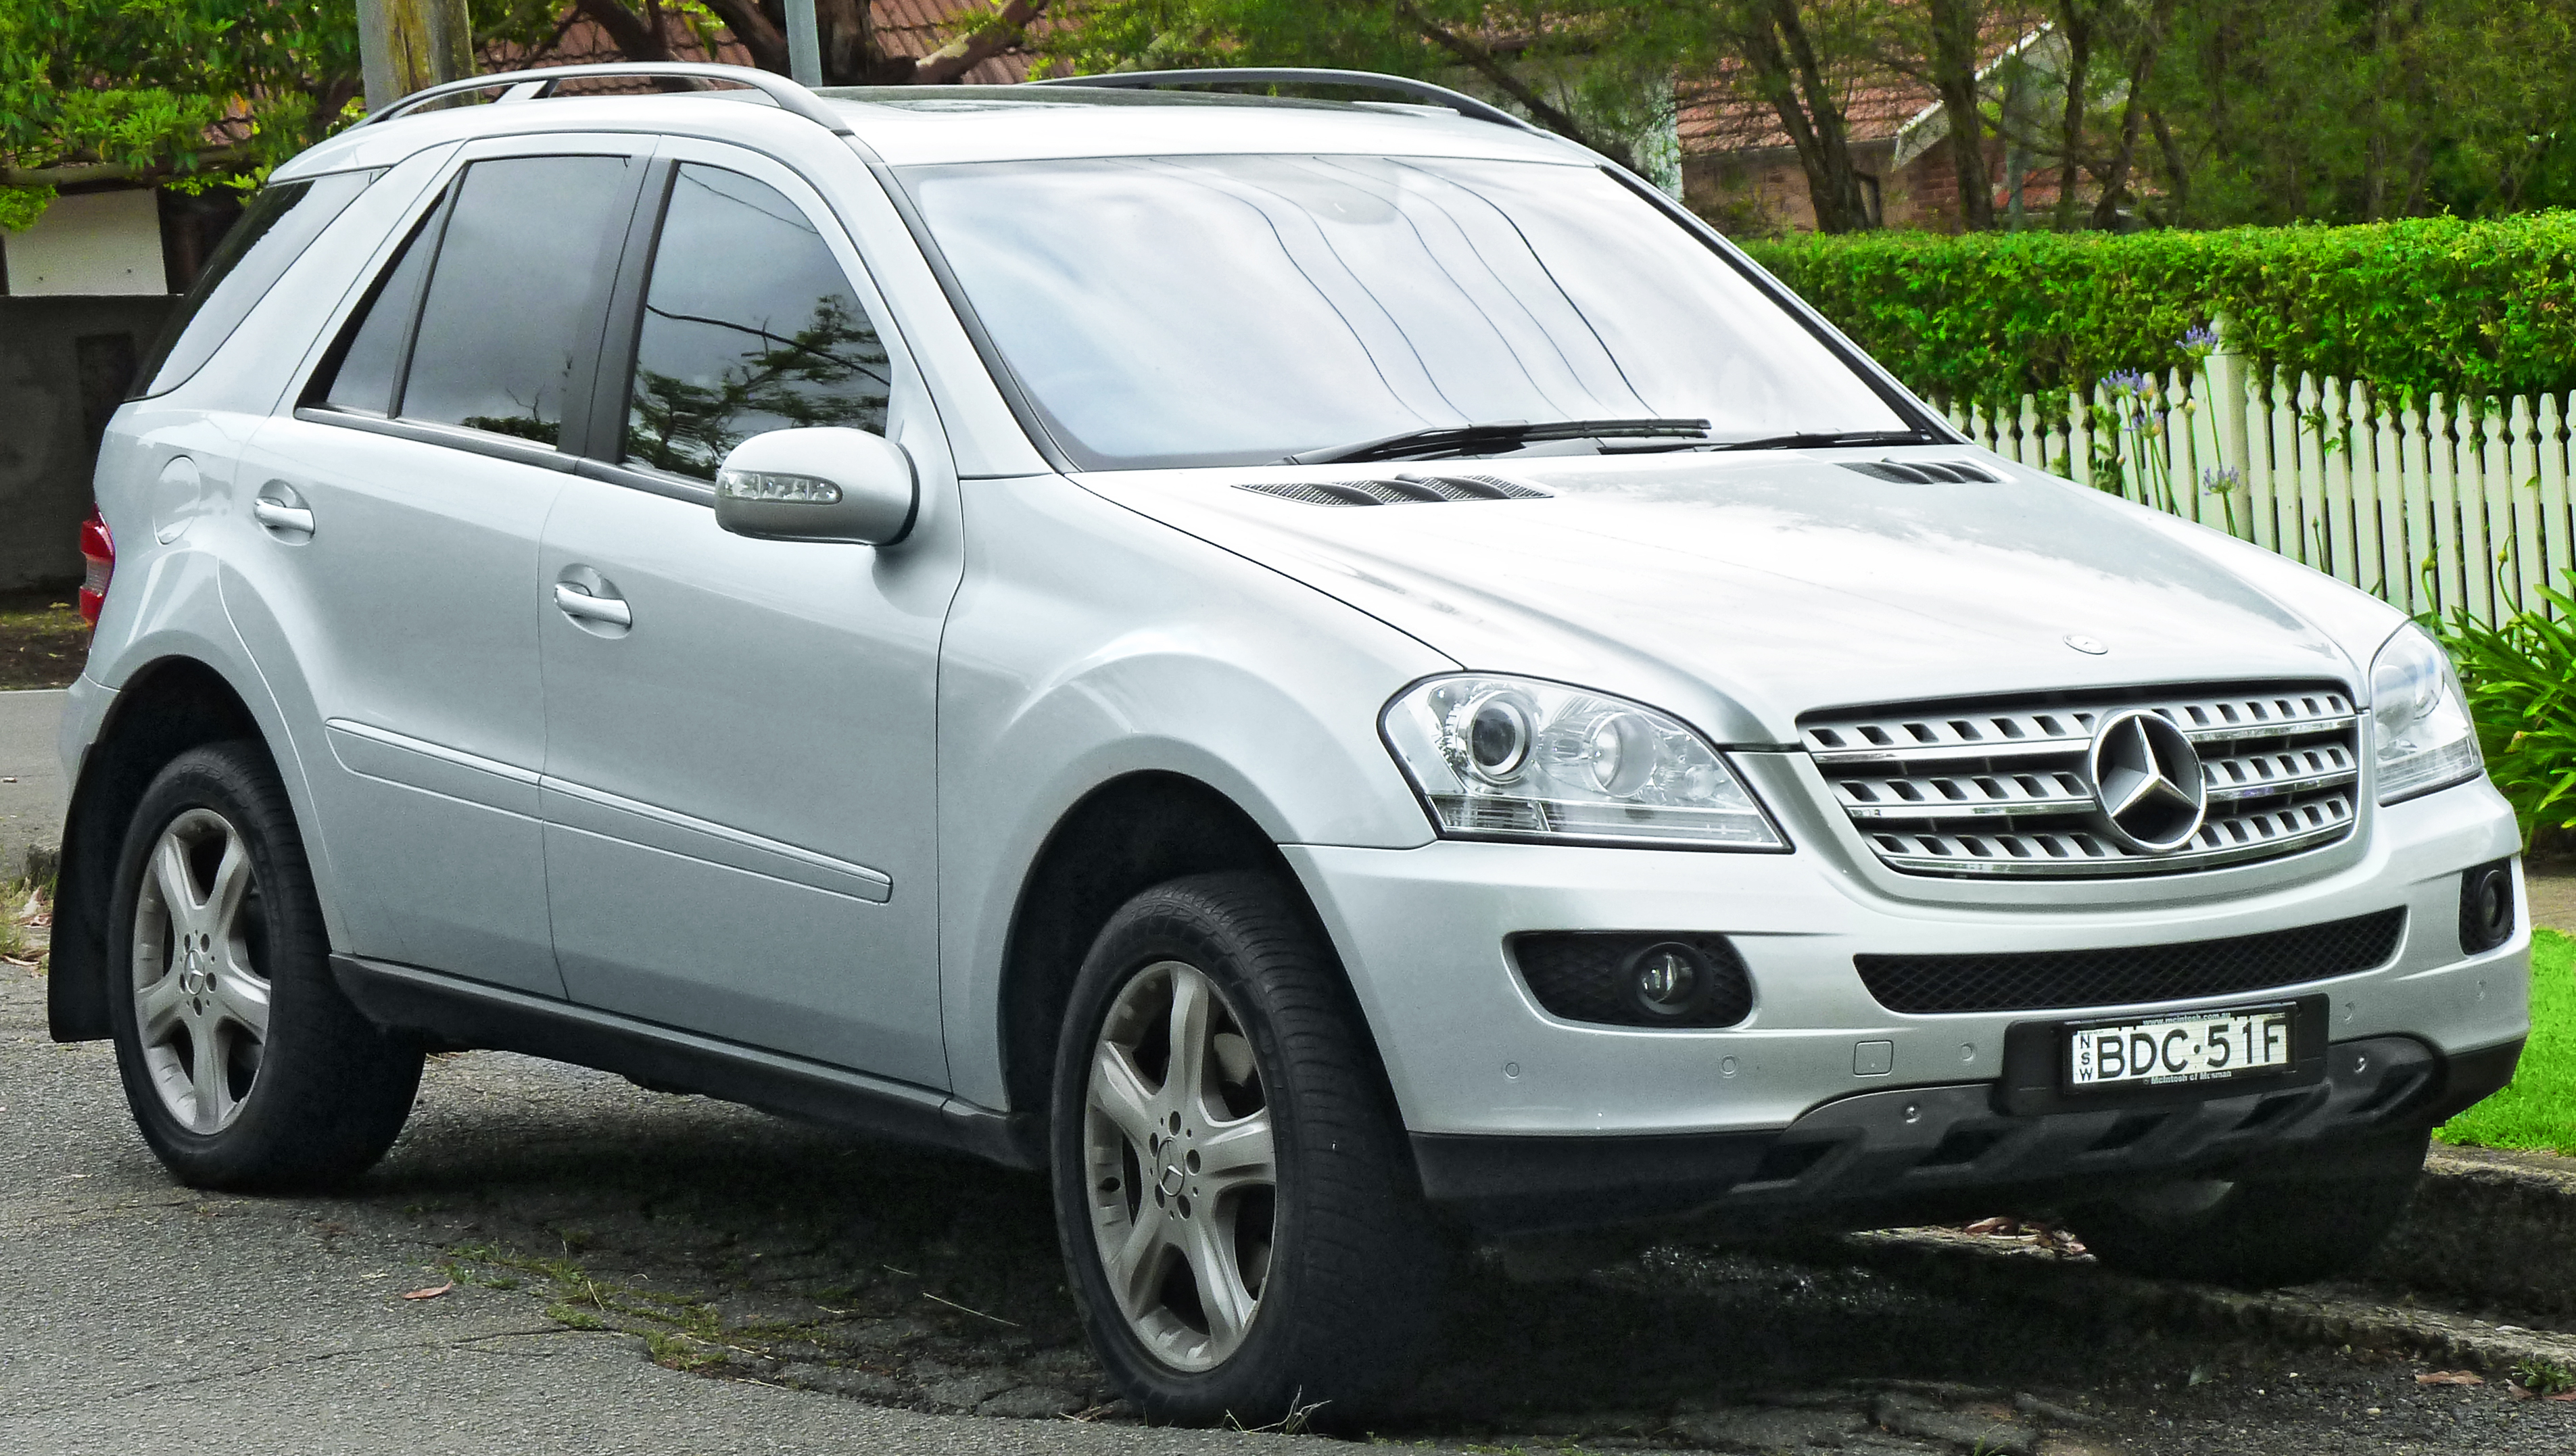 mercedes benz ml 320 cdi photos reviews news specs buy car. Black Bedroom Furniture Sets. Home Design Ideas